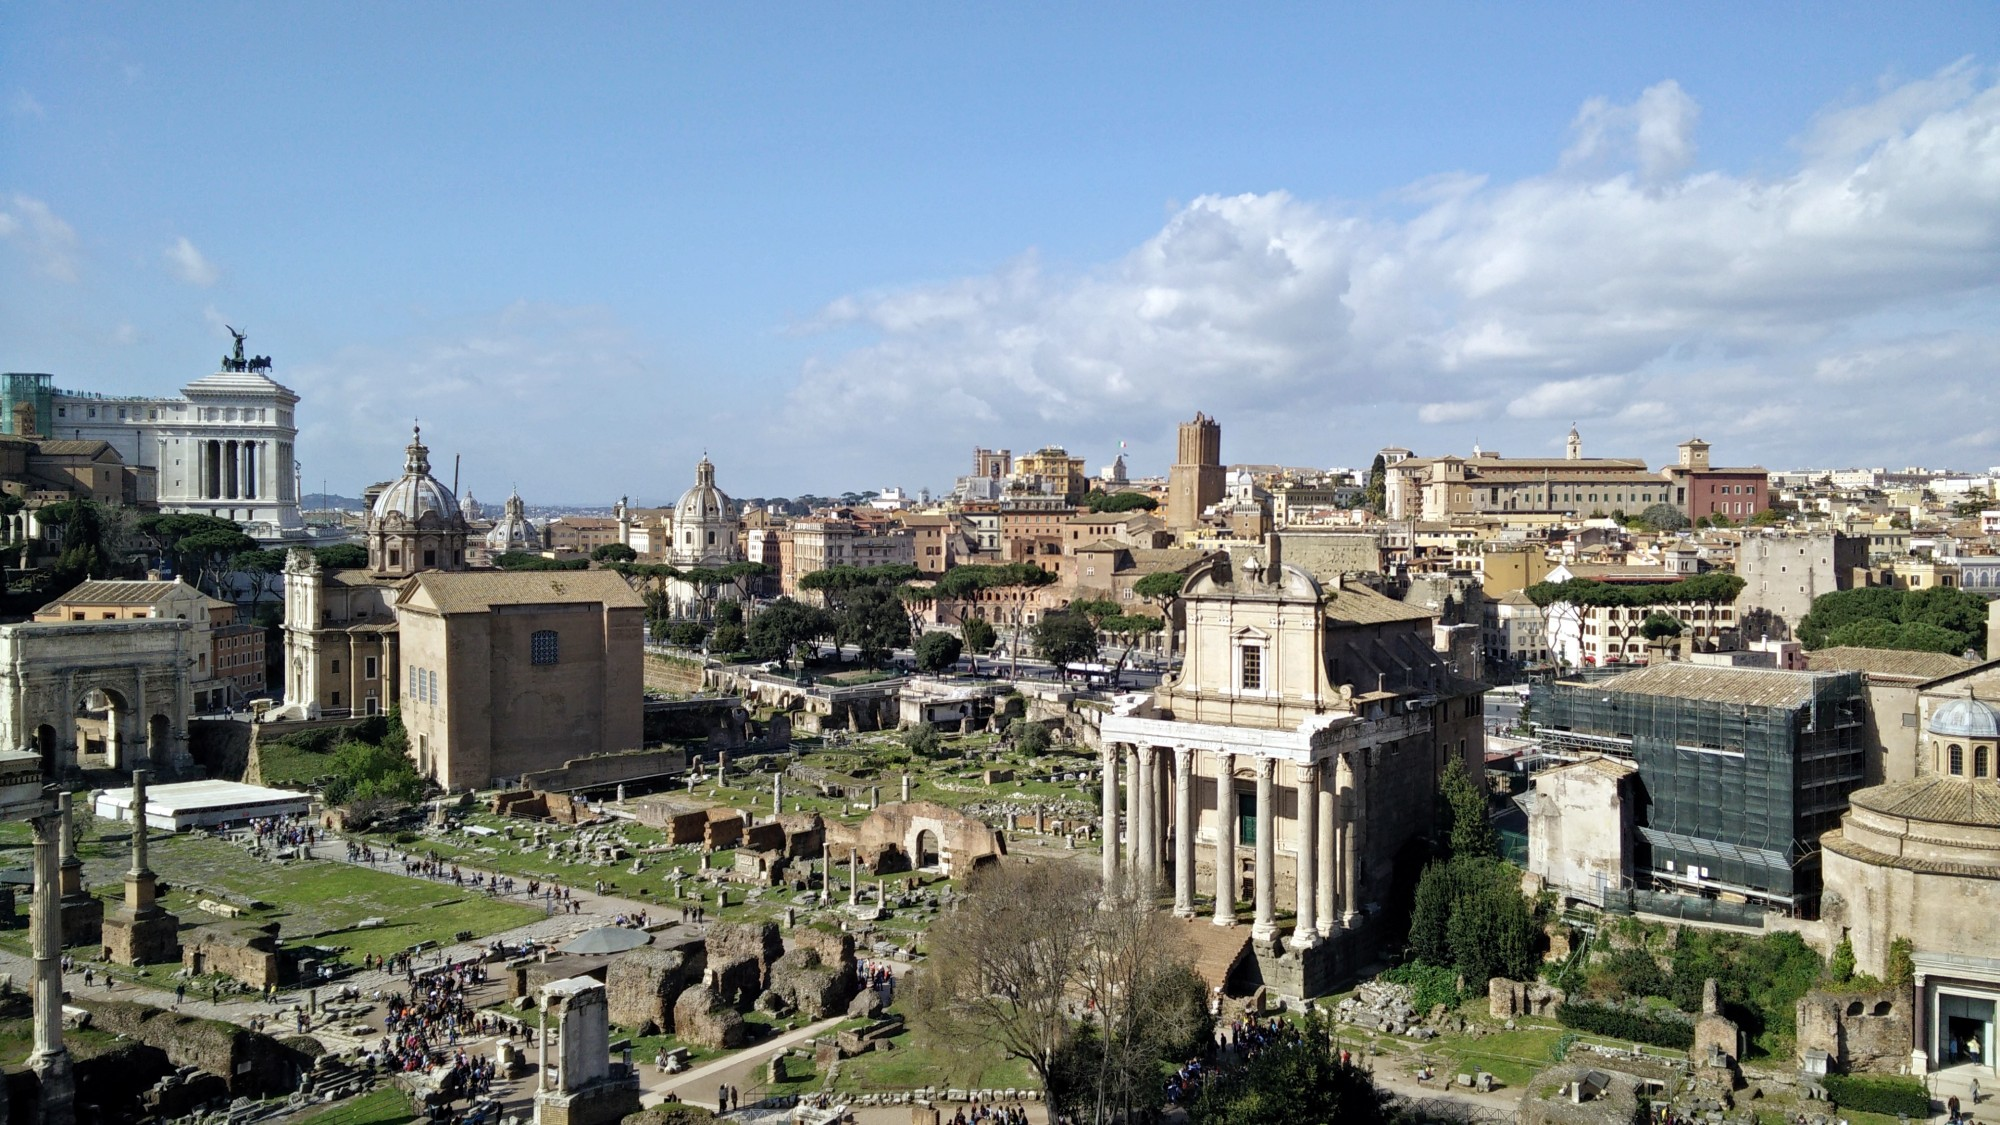 Palatine Hill Rome, Roman Forum & Palatine Hill : Ancient Rome   Visions of Travel